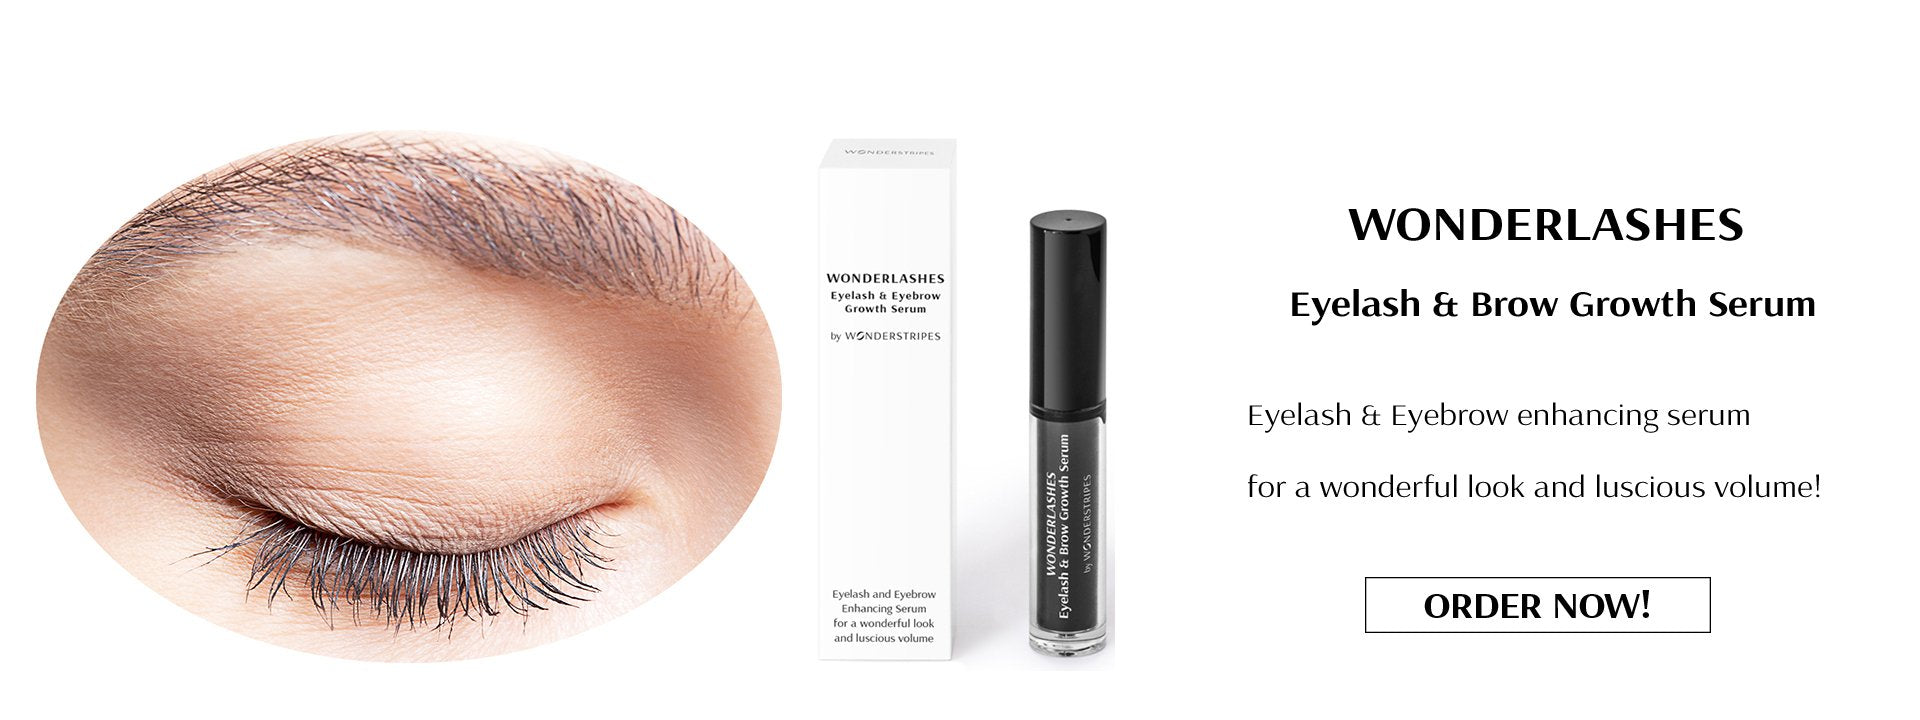 WONDERLASHES – for a seductive look!   Eyelash & Eyebrow enhancing serum for a wonderful look and luscious volume!